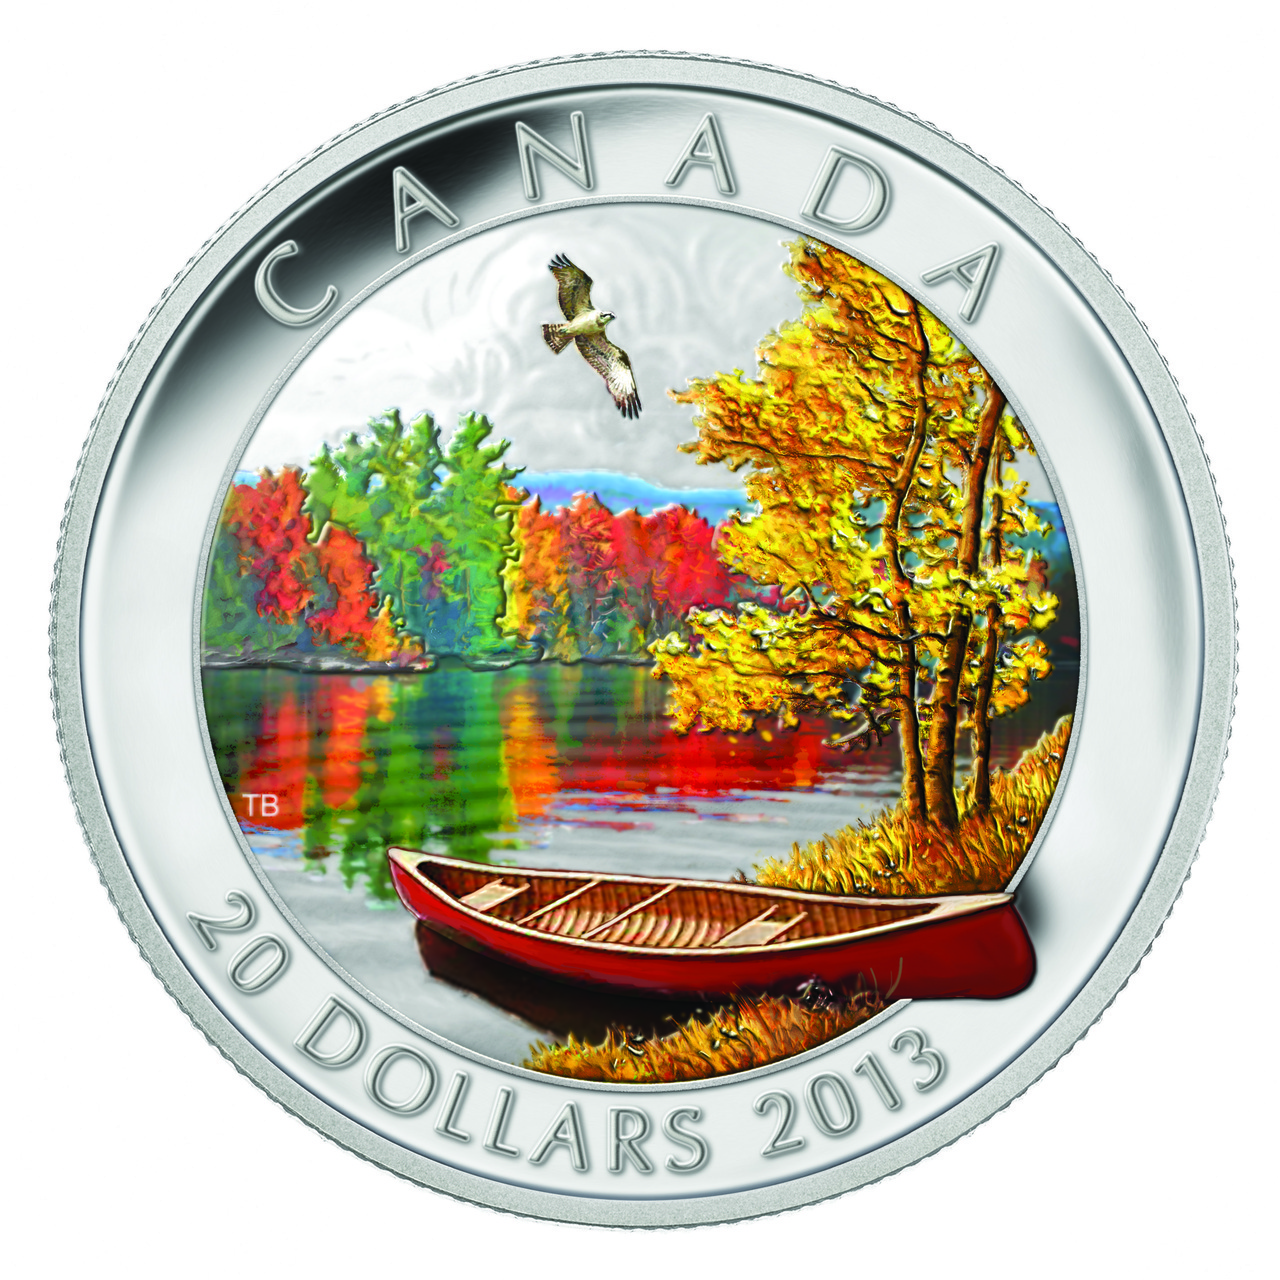 CANADA 2013 $20 Fine Silver Commemorative Coin - Autumn Bliss - Fine 1oz Silver Coin